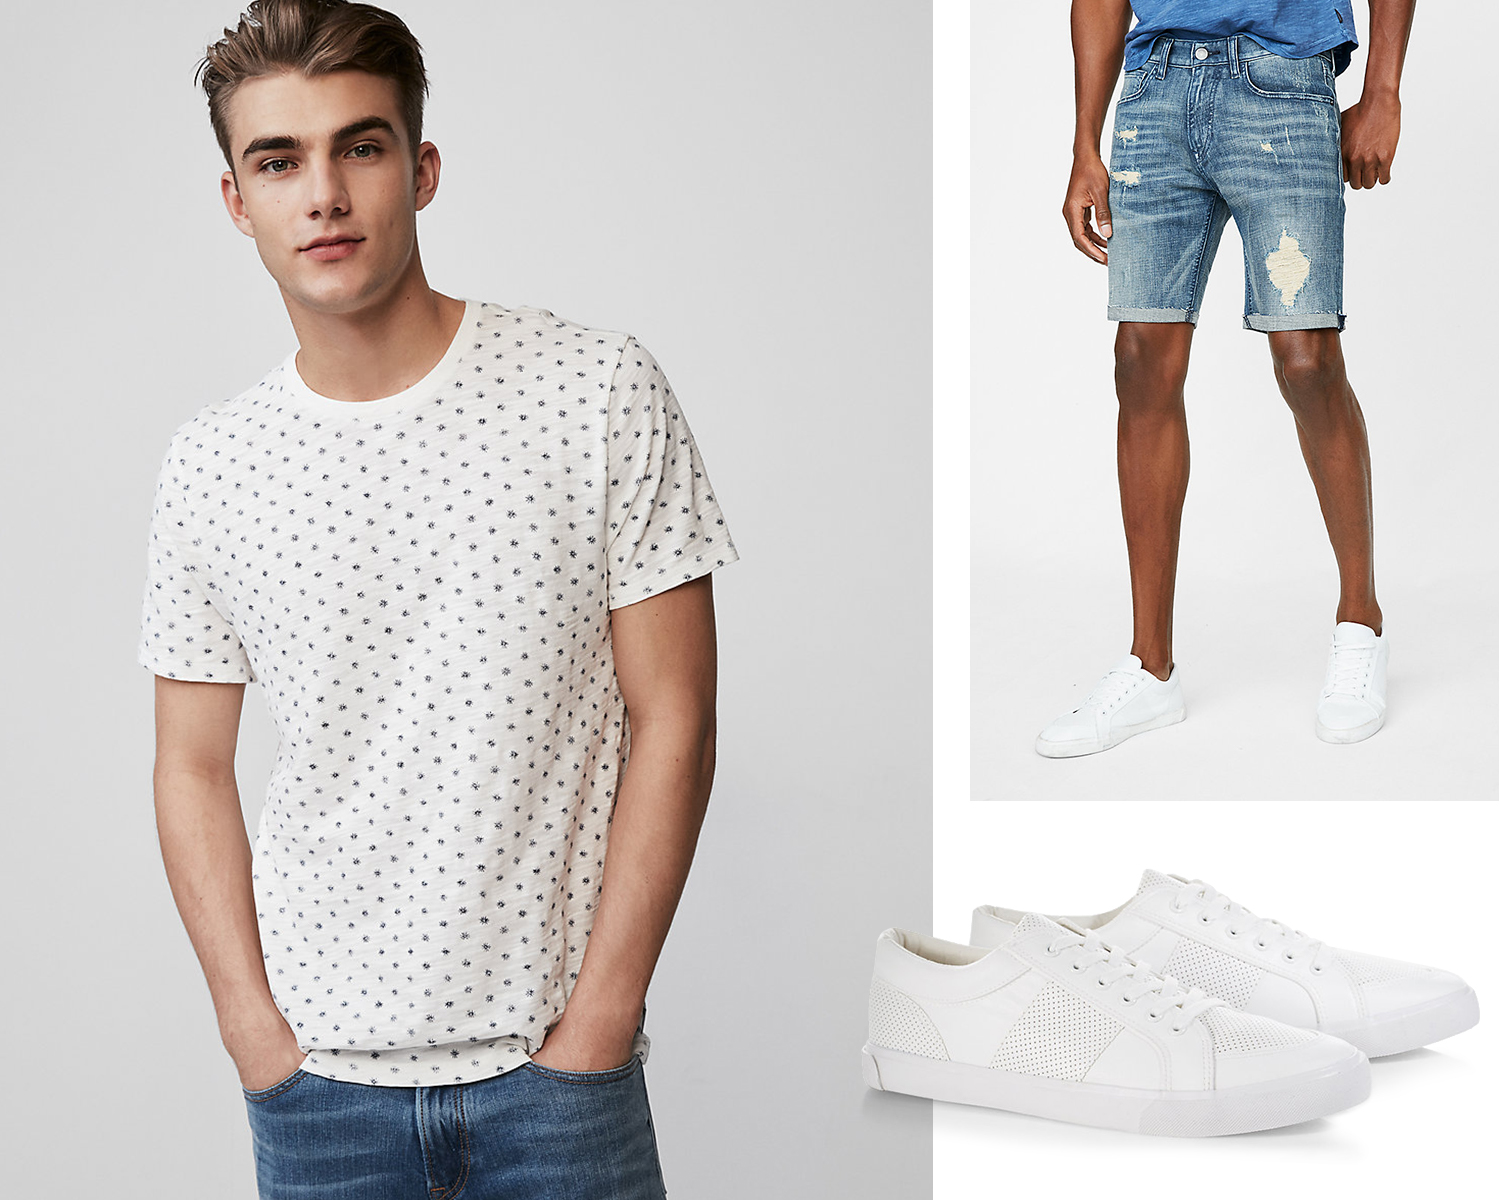 mens-microprint-tee-denim-shorts-low-top-sneakers